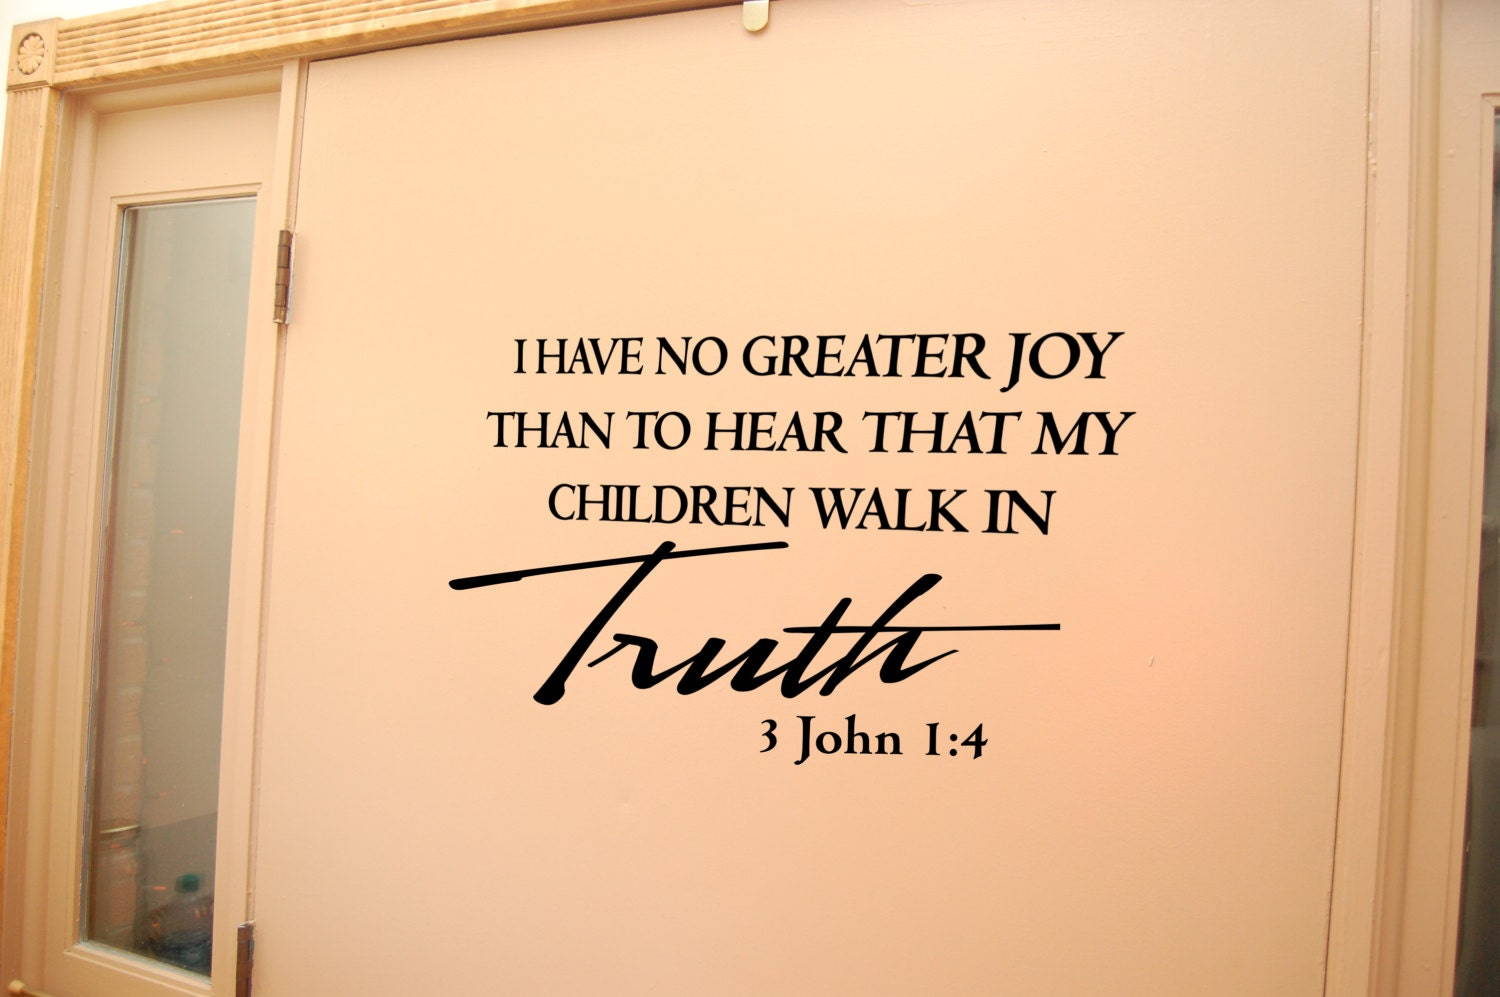 3 john 1 4 wall decal family quote decal laundry room decal zoom